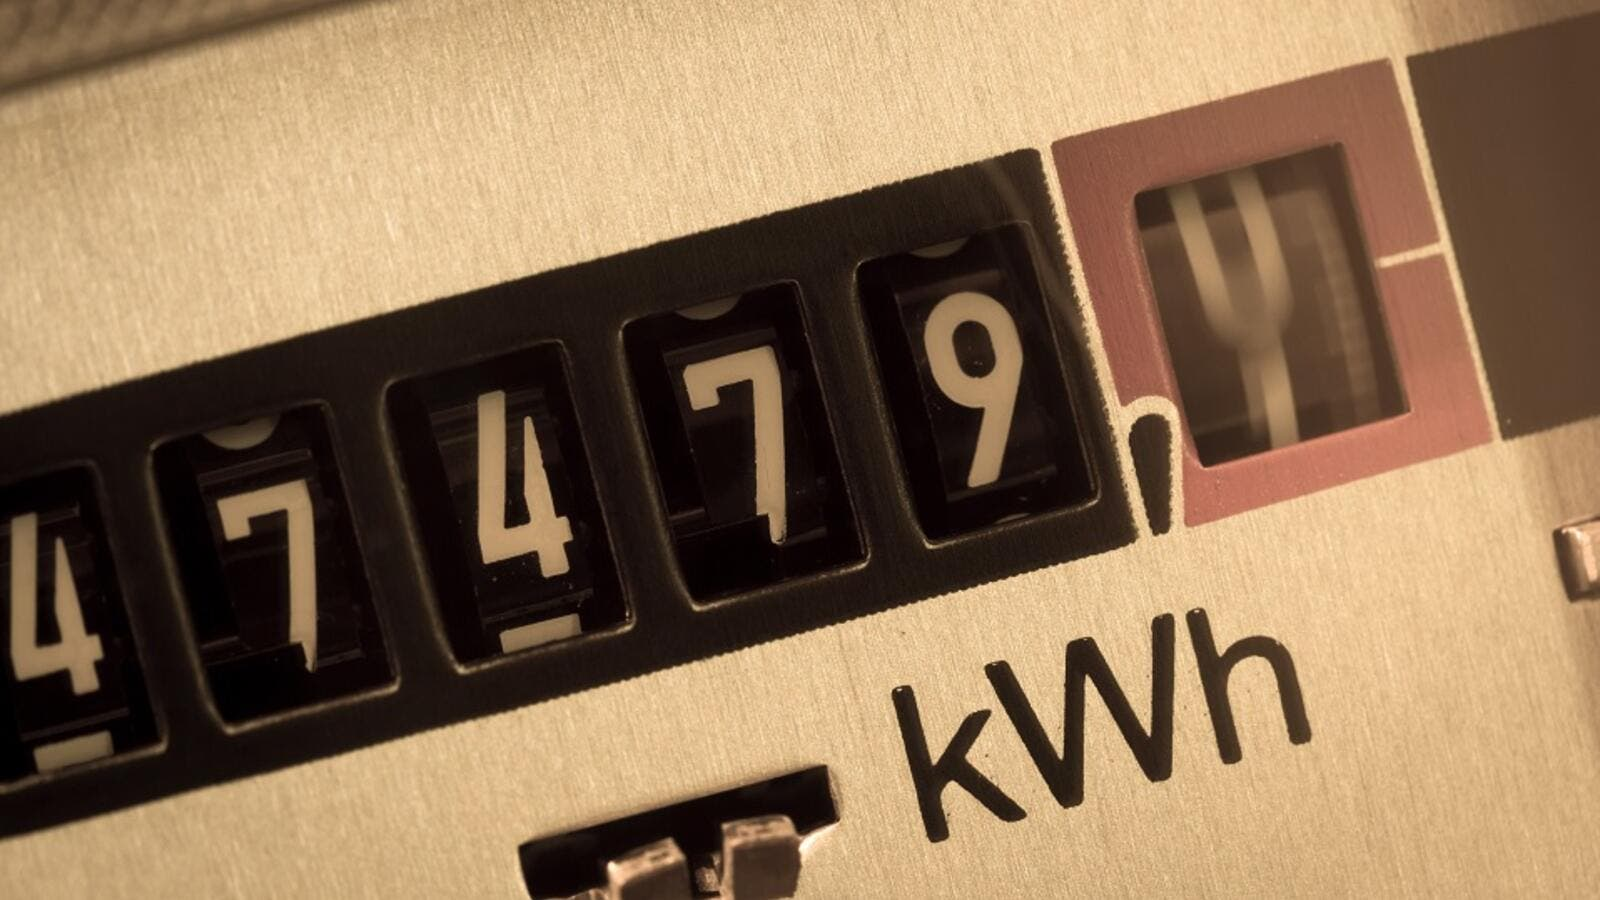 Consumption of energy in Kuwait is hitting 700,000 per day.